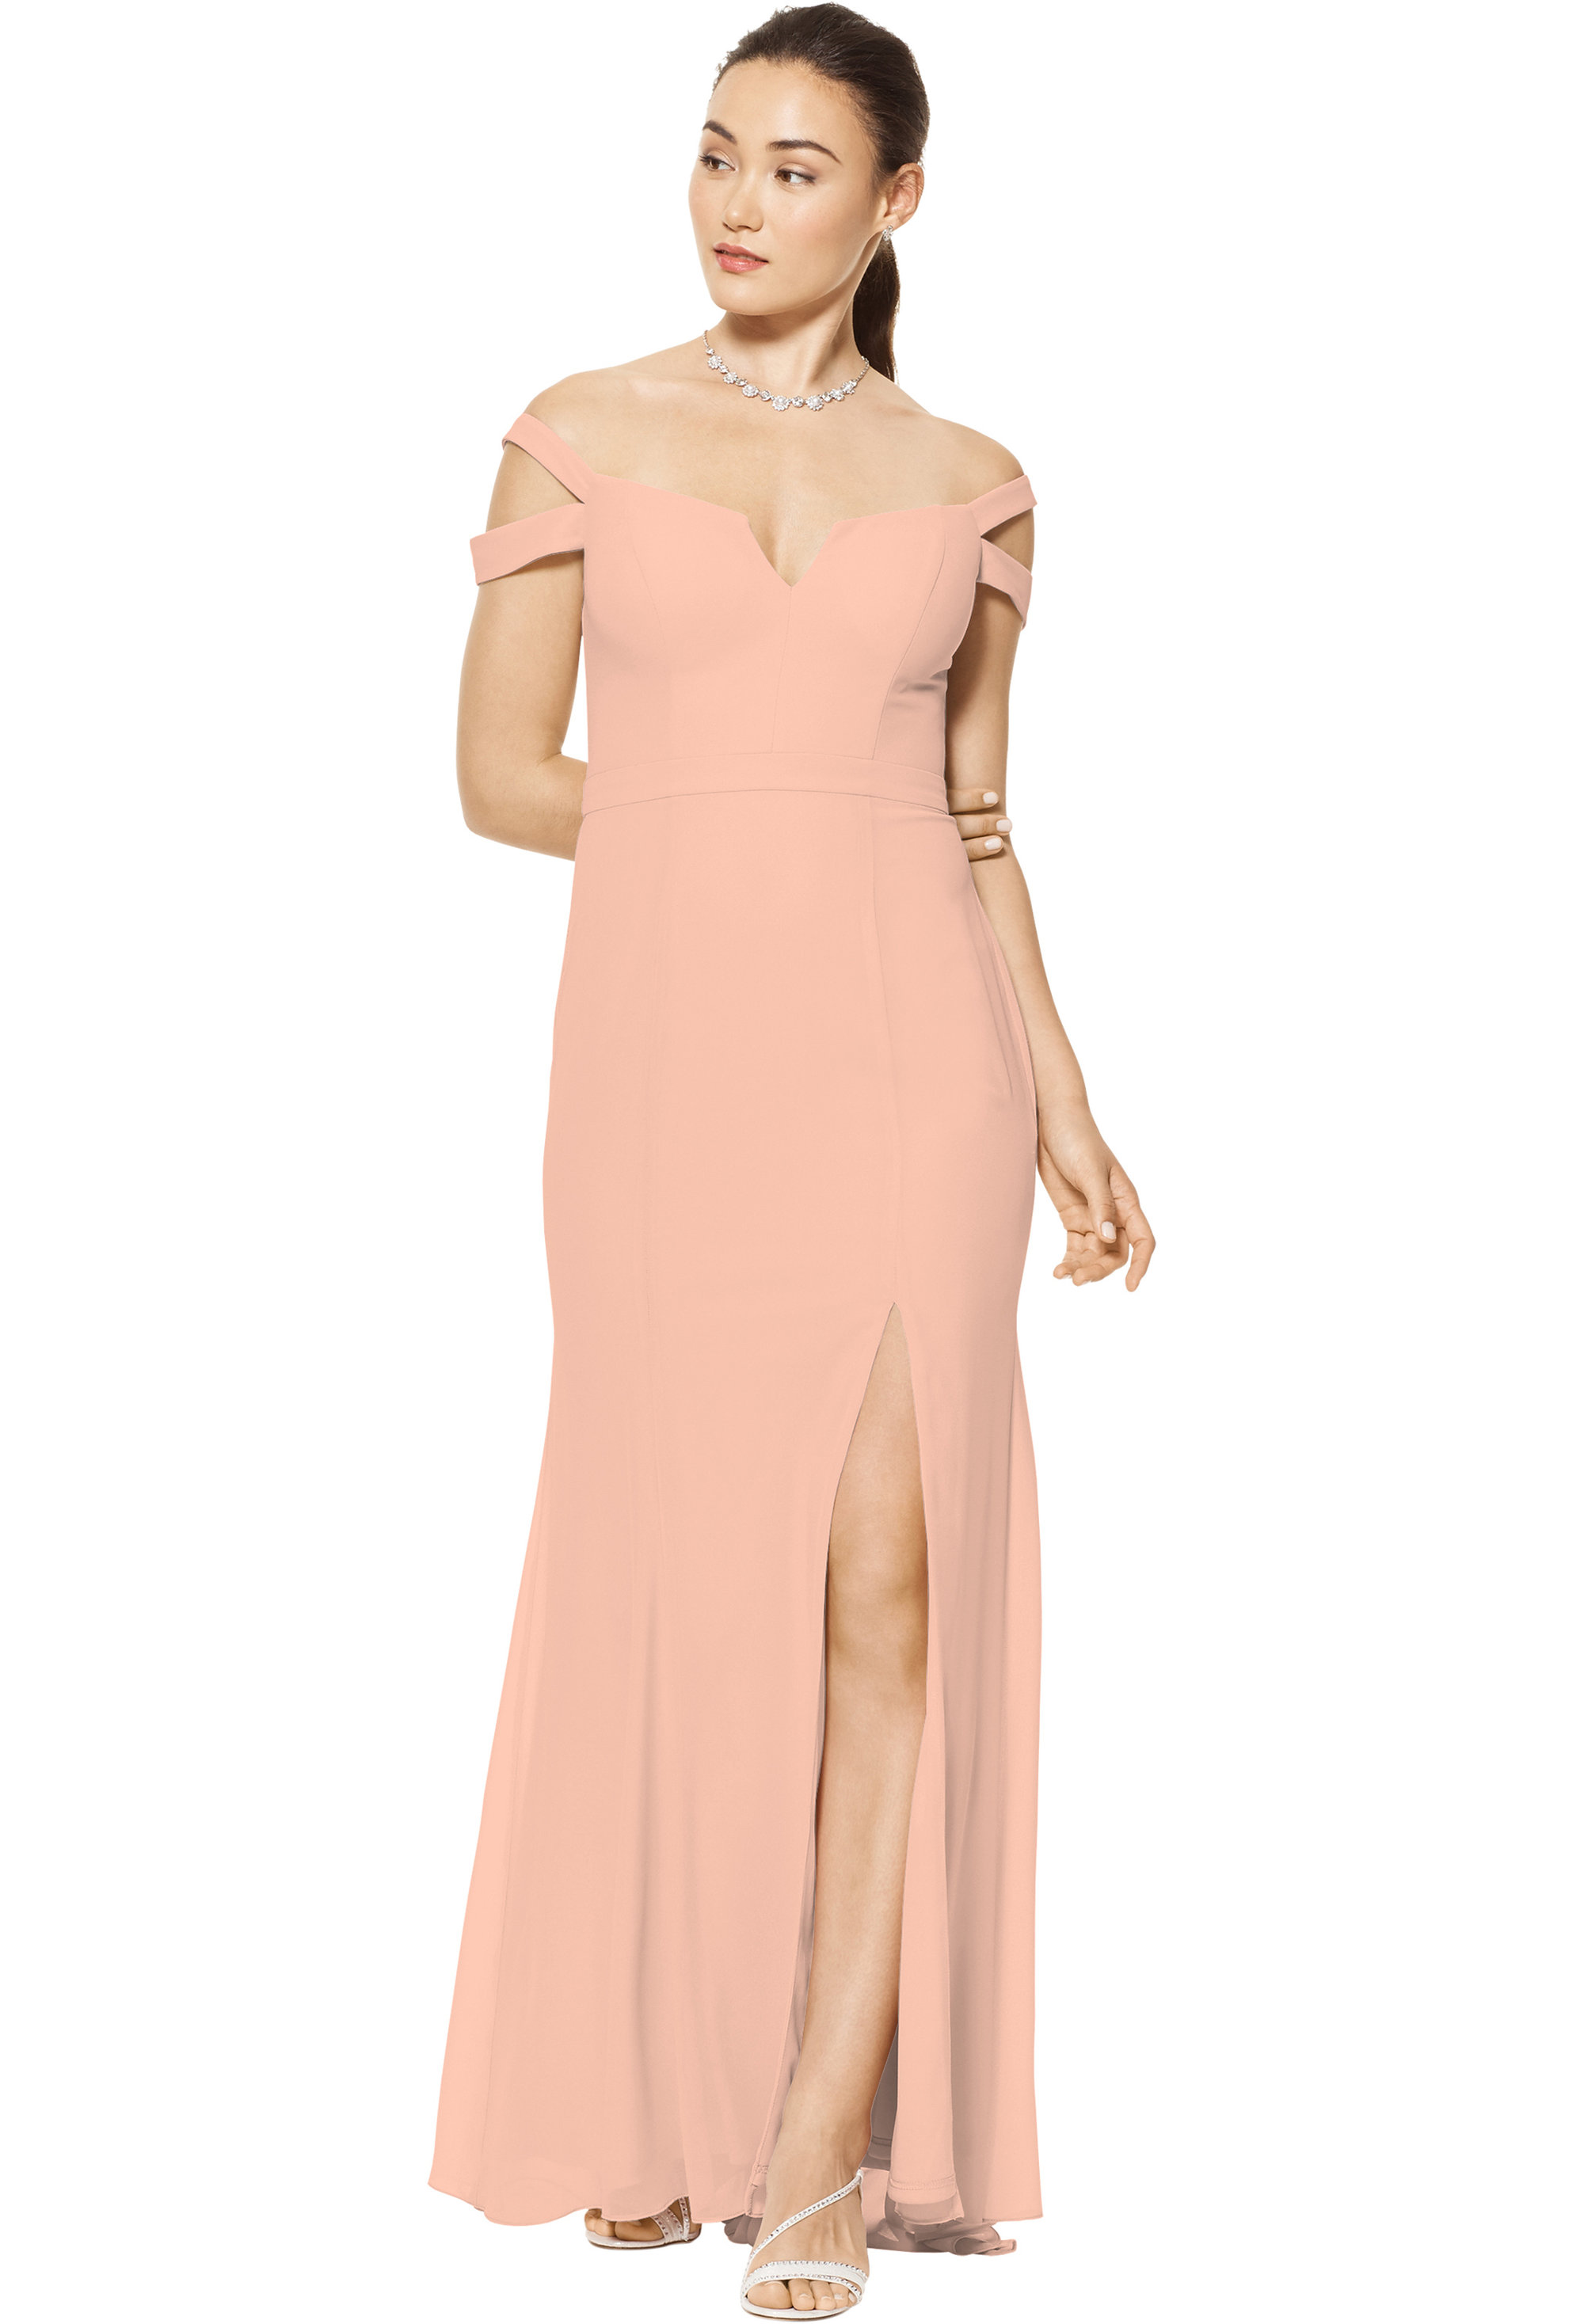 Bill Levkoff PEACH Chiffon Off The Shoulder A-line gown, $158.00 Front